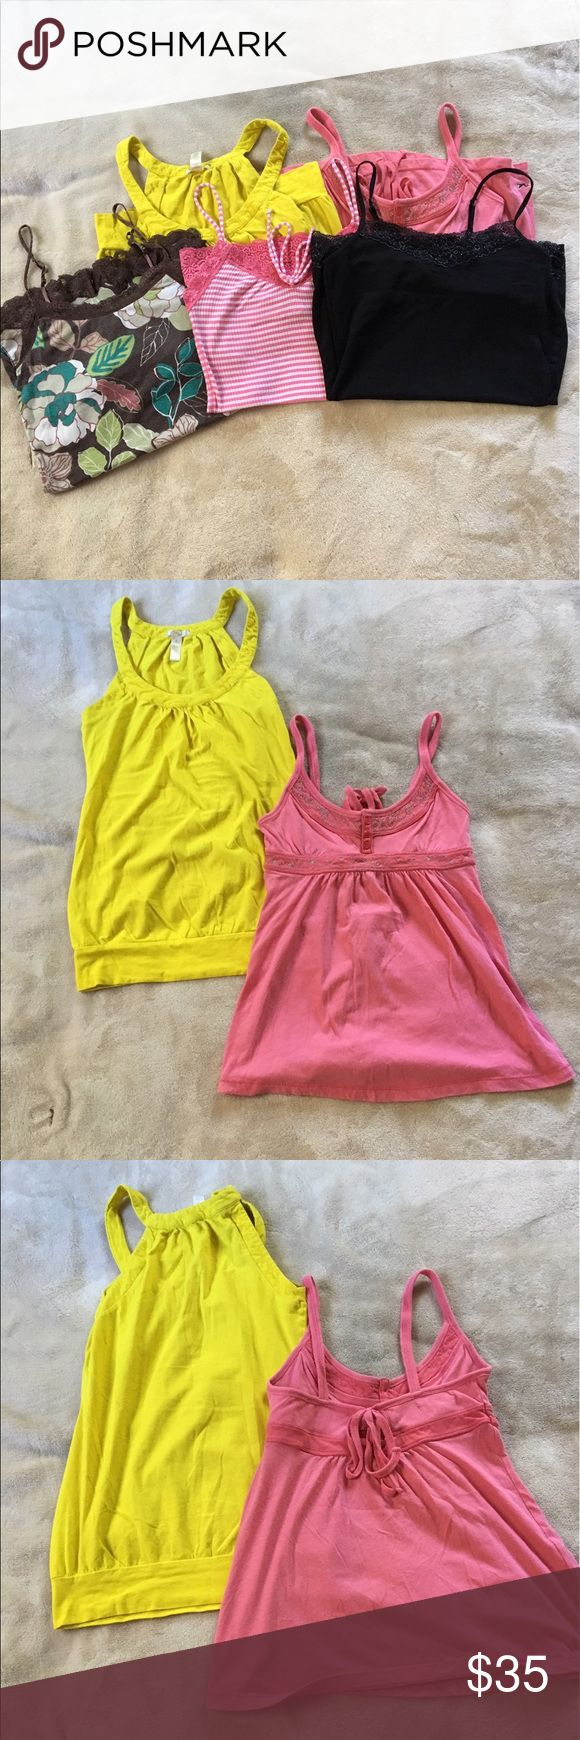 Bundle of tank tops Bundle of 5 tank tops size xsmall-small. Yellow tank top is ambiance apparel brand size small 95% cotton 5% spandex. Pink tank top is Hollister brand size xsmall 60% cotton 40% polyester. Black tank top is express brand size xsmall sexy stretch. Pink striped tank top is Hollister brand size small. Brown camisole is American eagle brand size small. Excellent condition. Tops Tank Tops